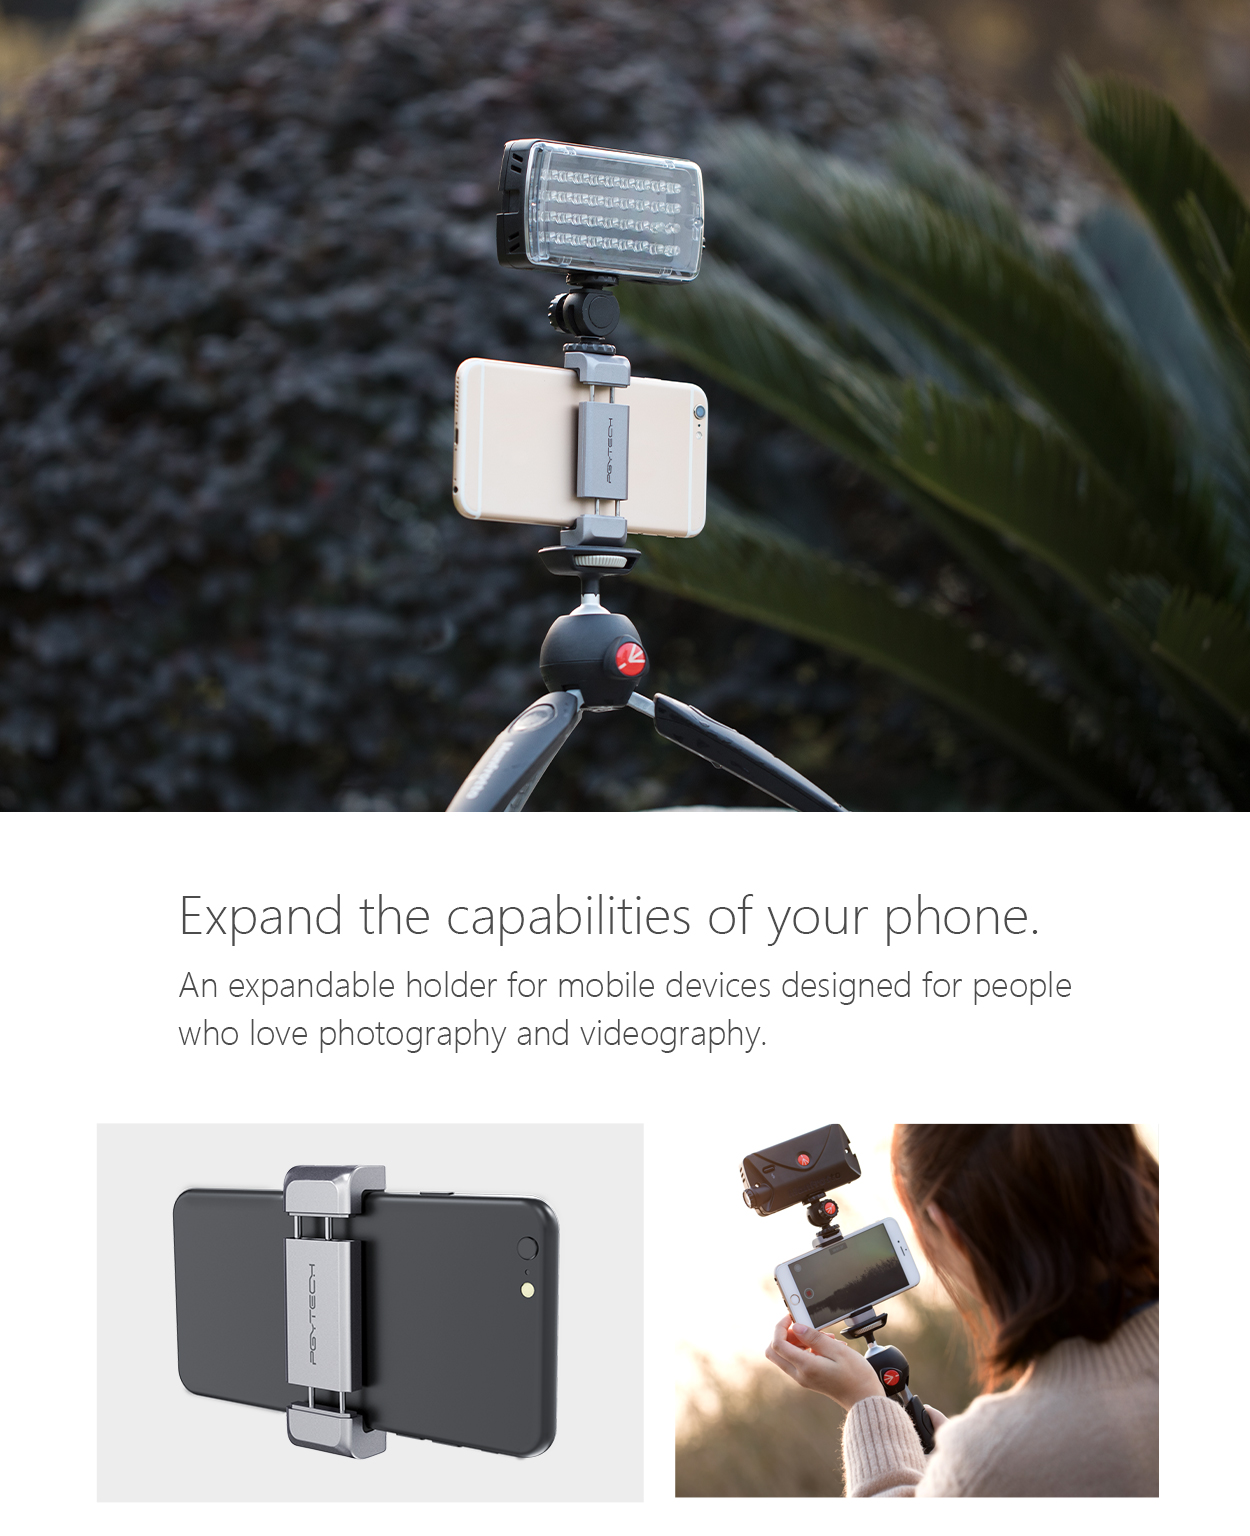 PGYTECH DJI OSMO Pocket Aluminum Universal Phone Holder Stand Handhold Stabilizer Bracket for OSMO Pocket Spare Part Accessory